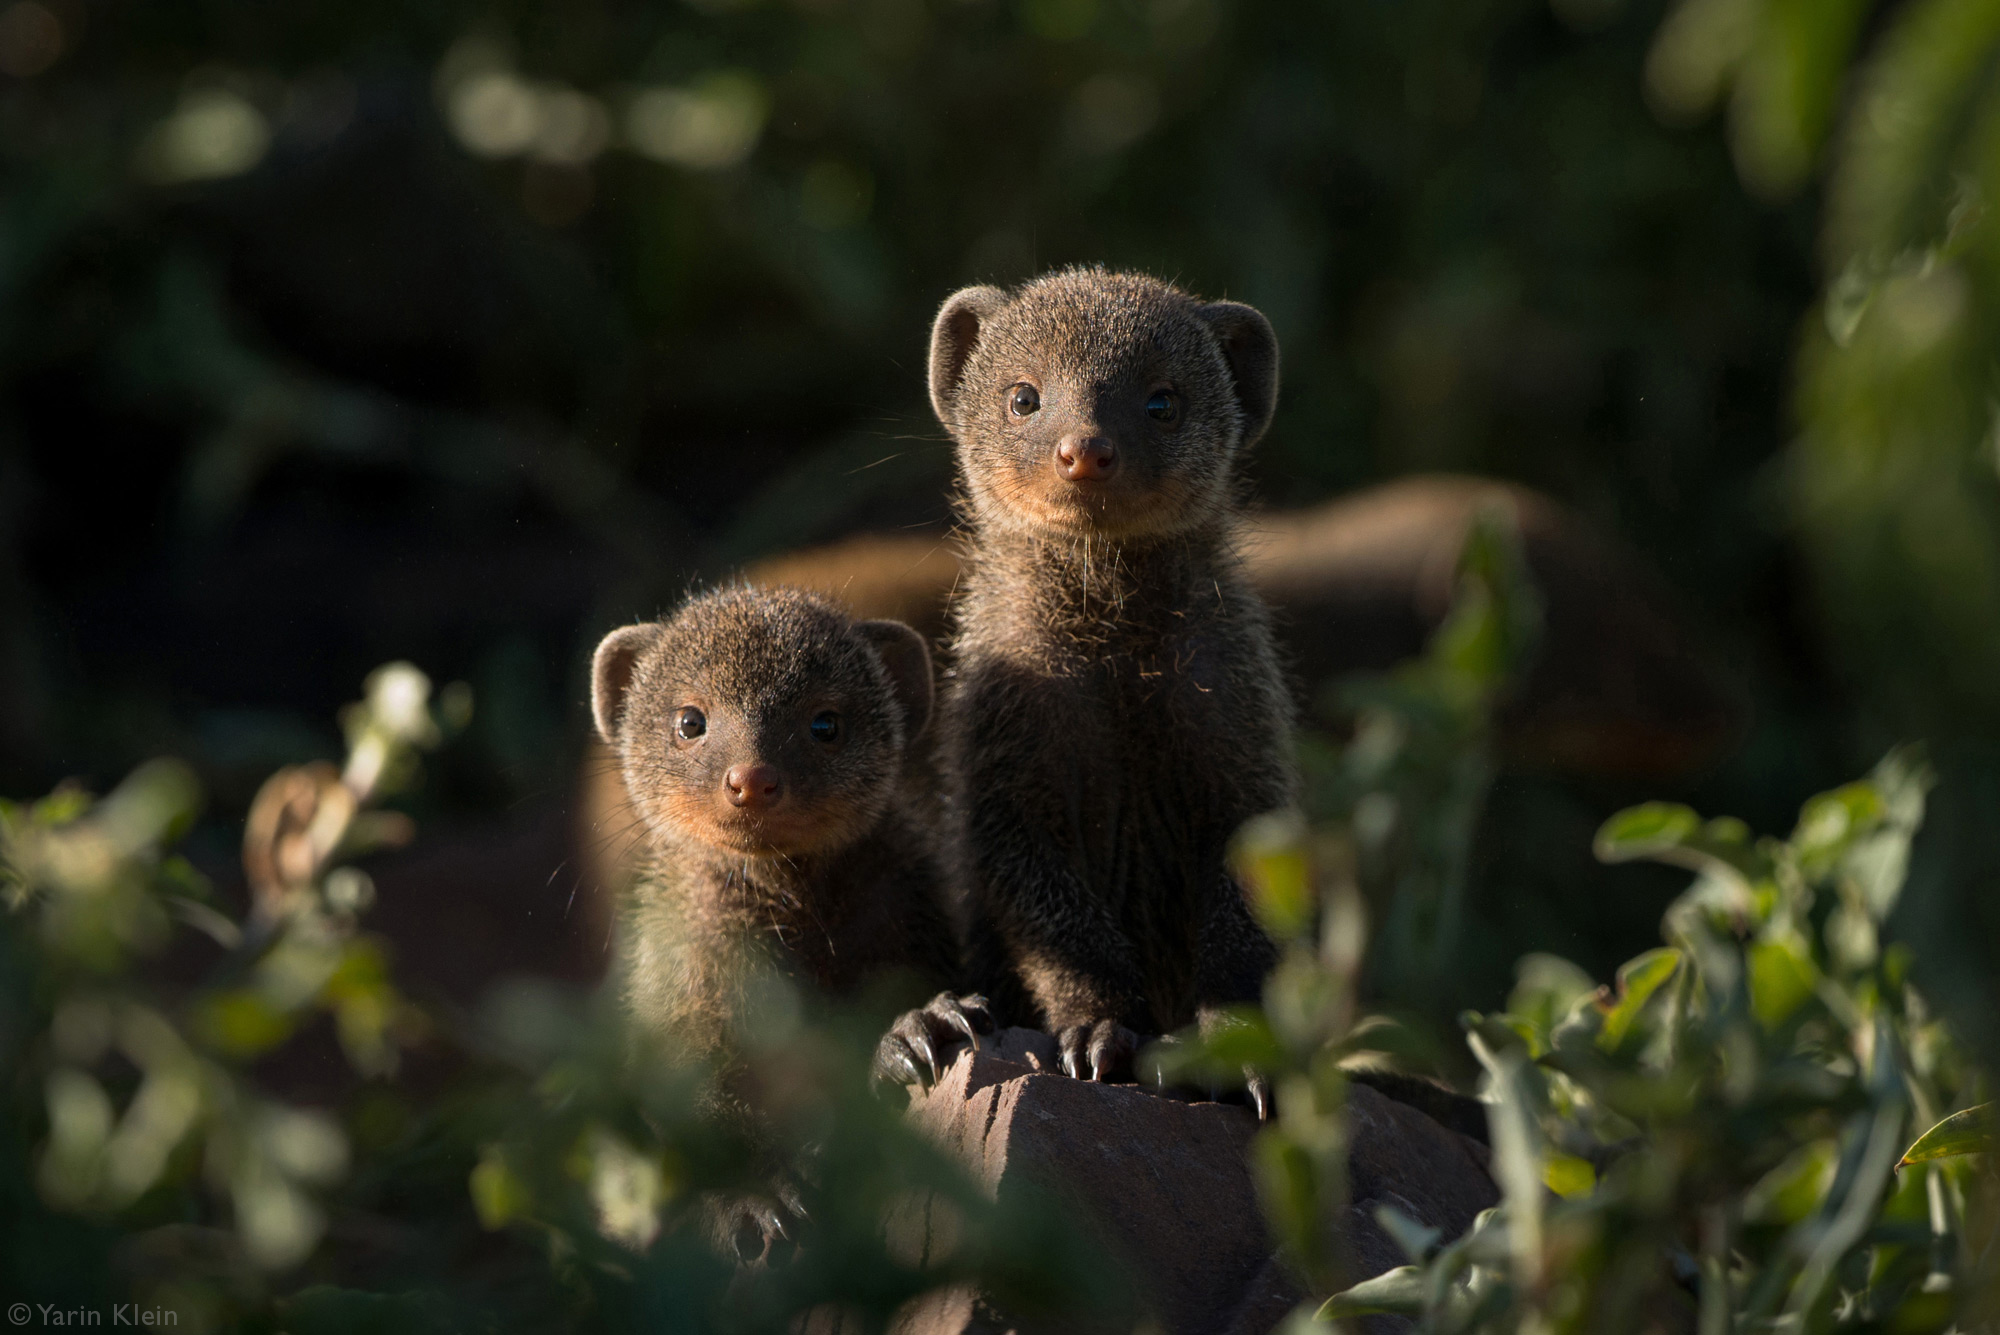 Two juvenile mongooses staring at the camera